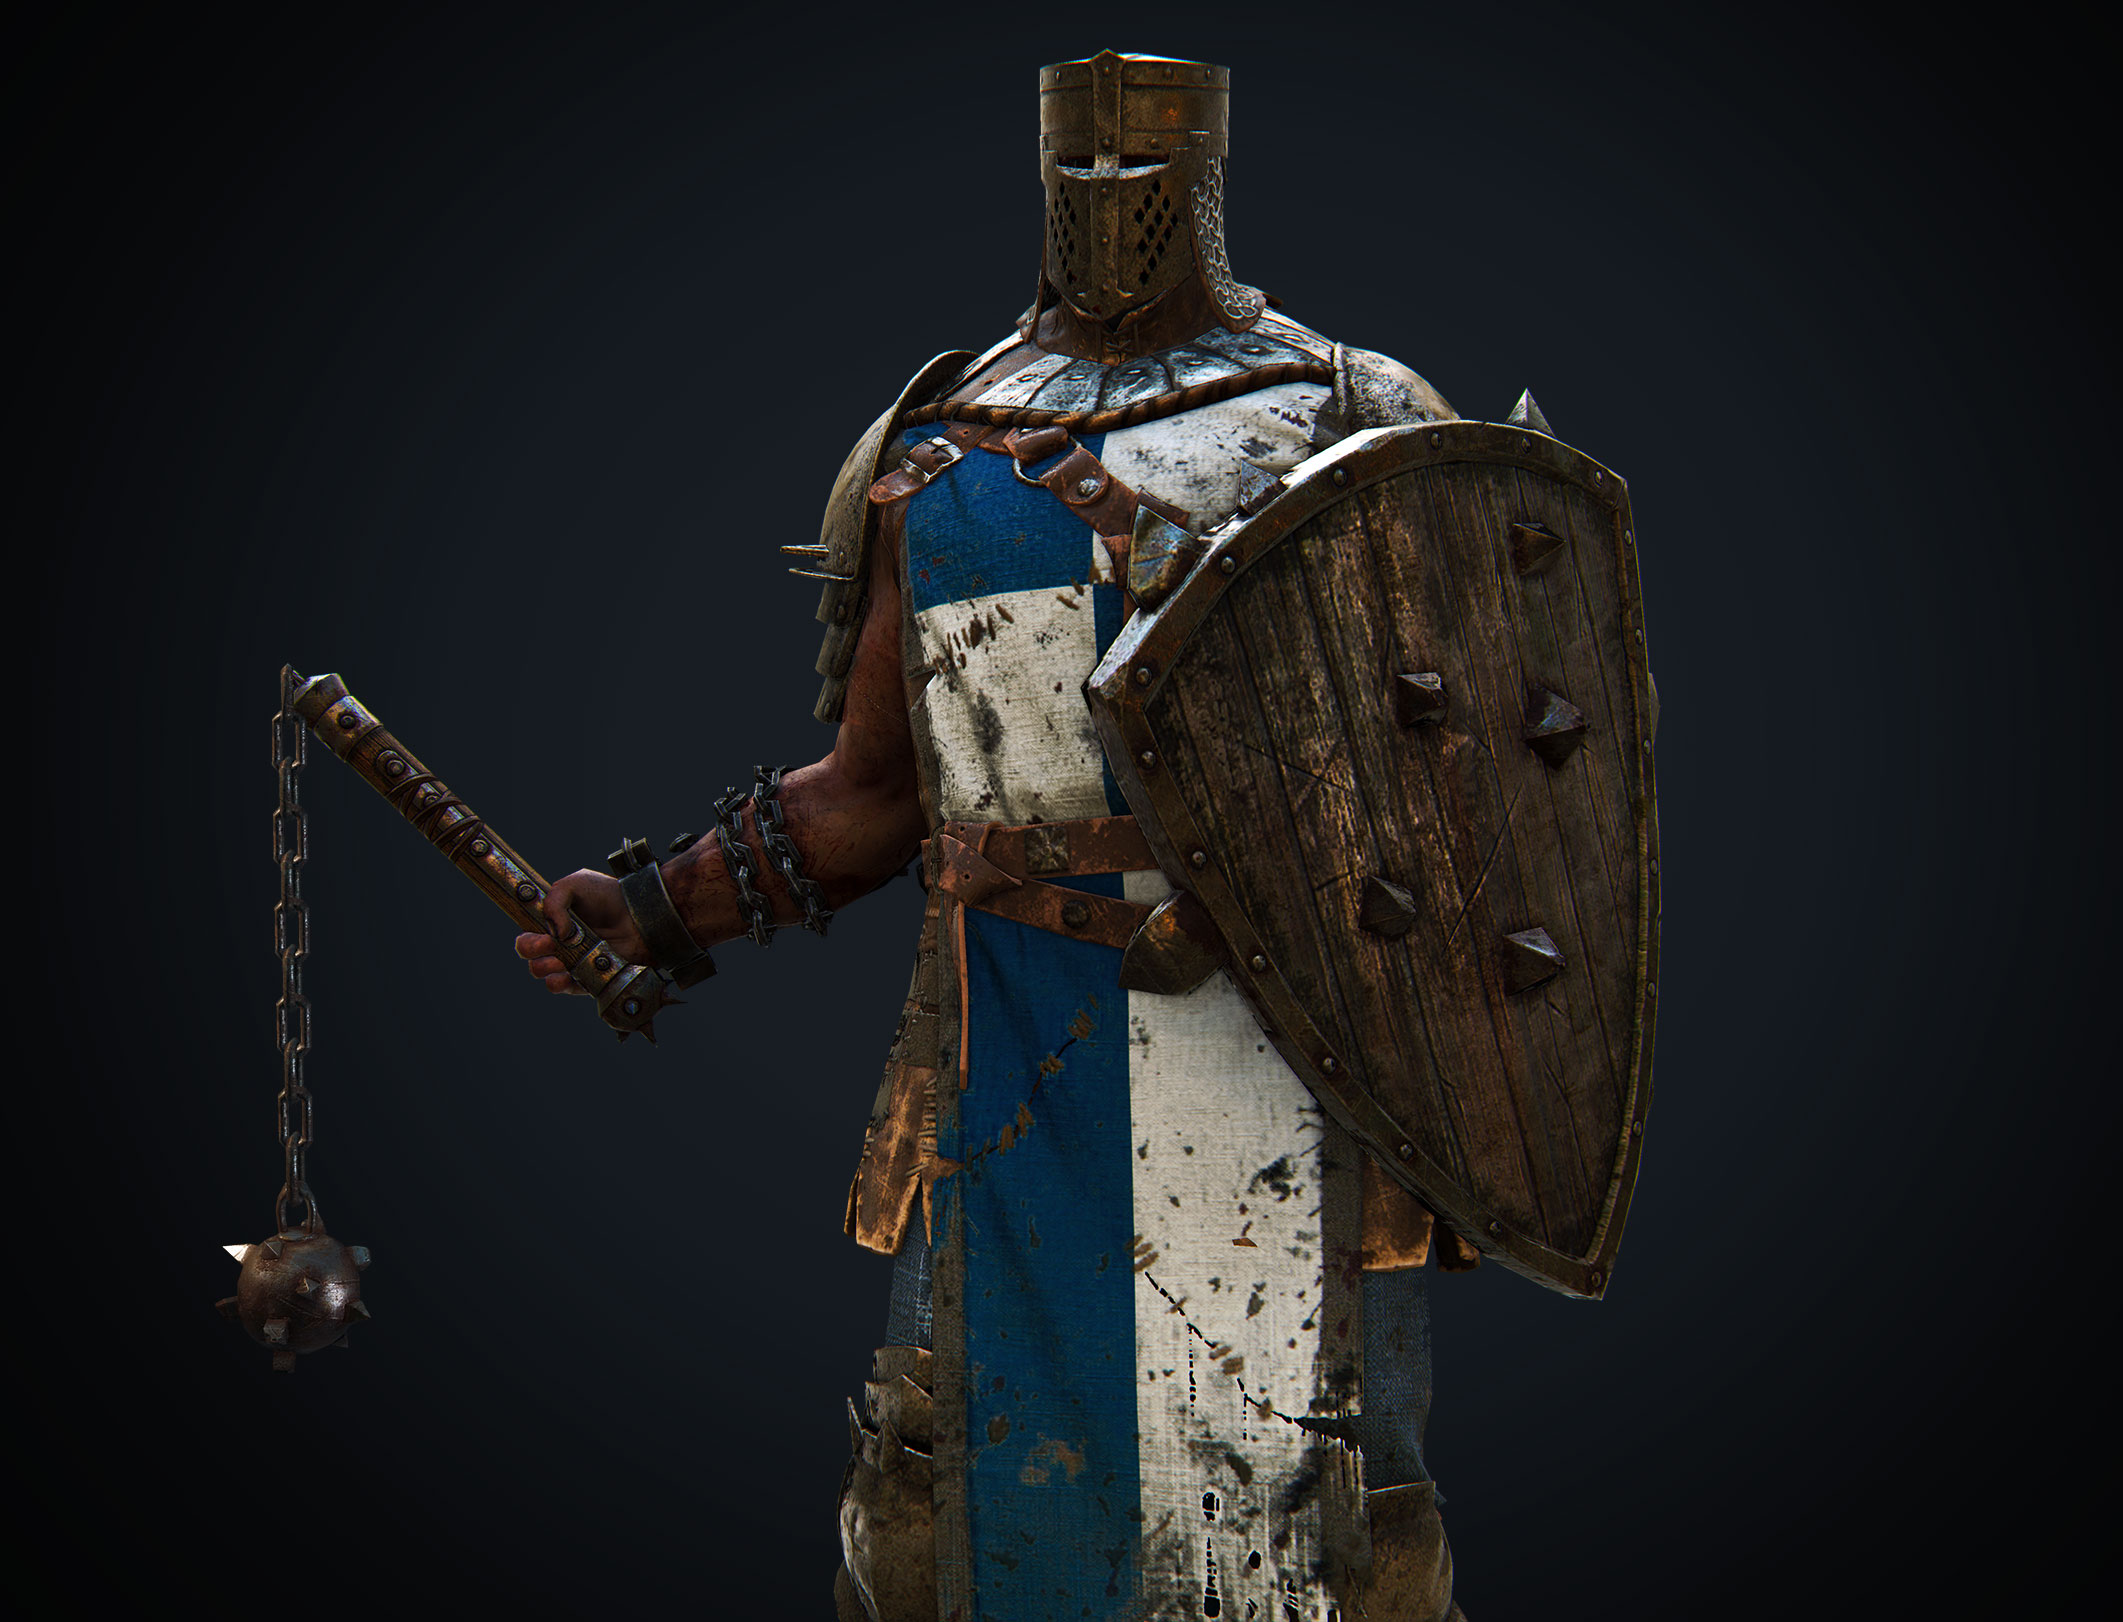 The conquerors guide for honor knights hero ubisoft us warden conqueror peacekeeper lawbringer gumiabroncs Gallery